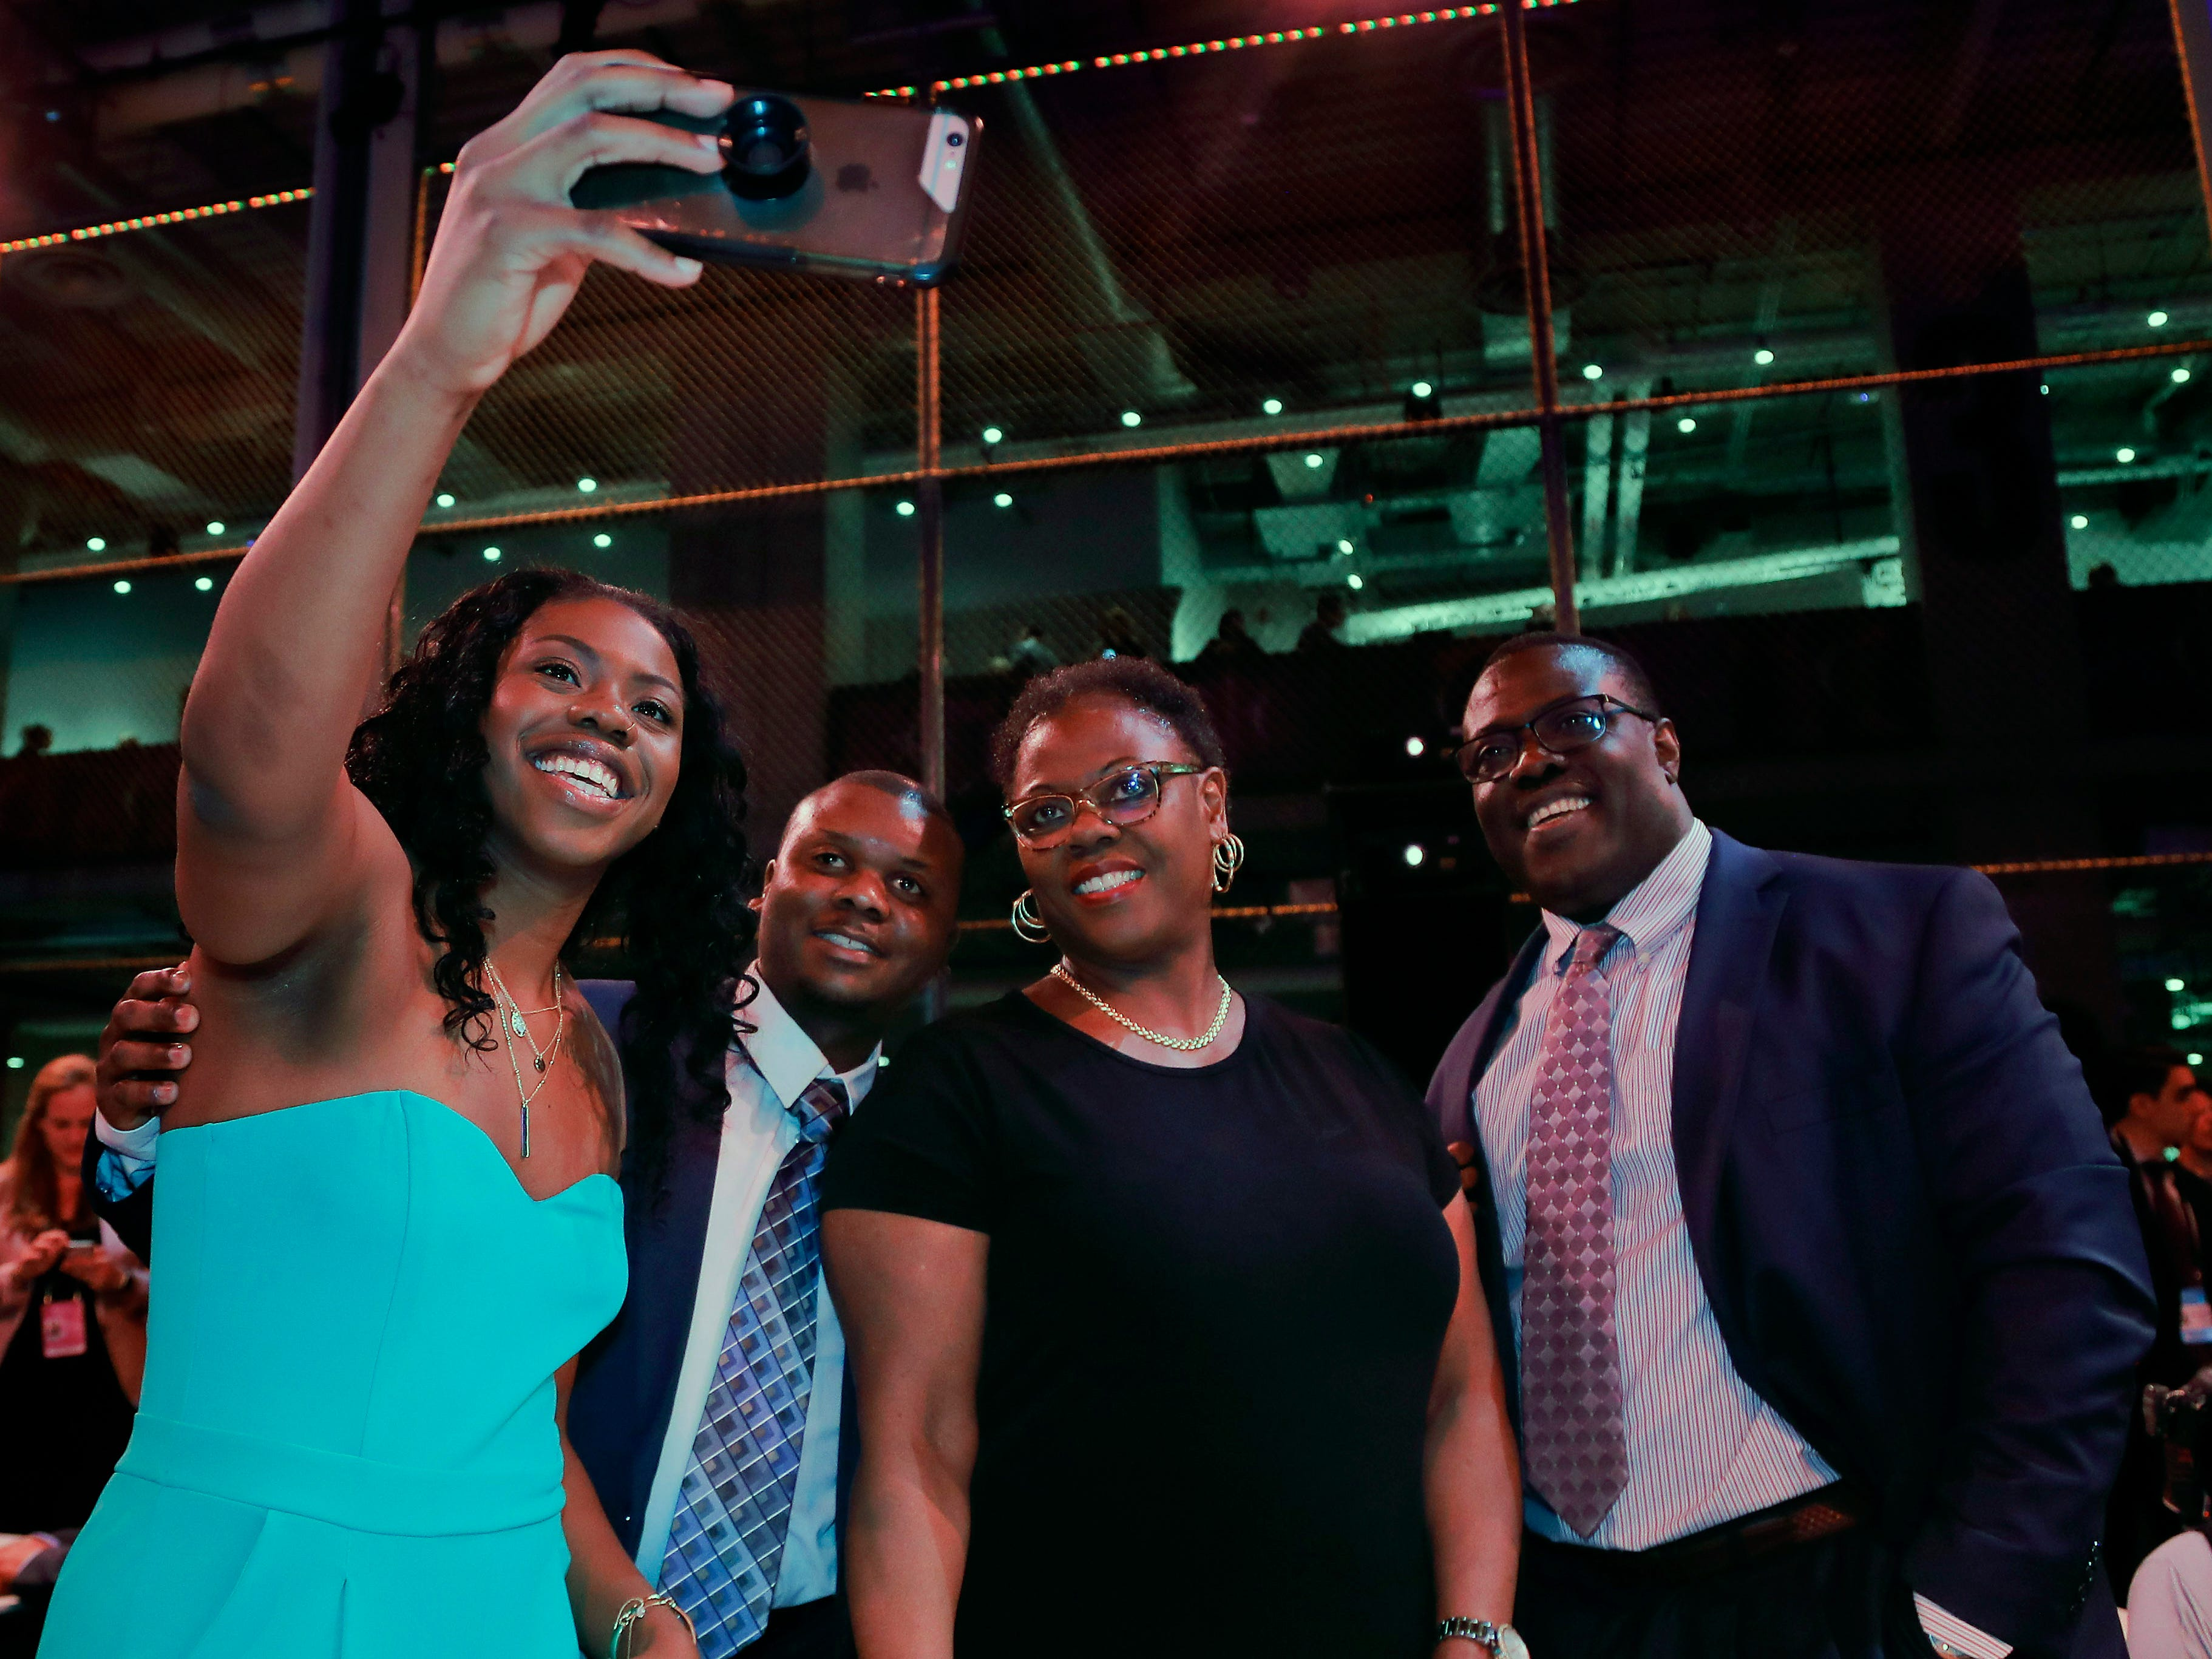 Arike Ogunbowale (left) takes a selfie with her family before the WNBA draft in New York.